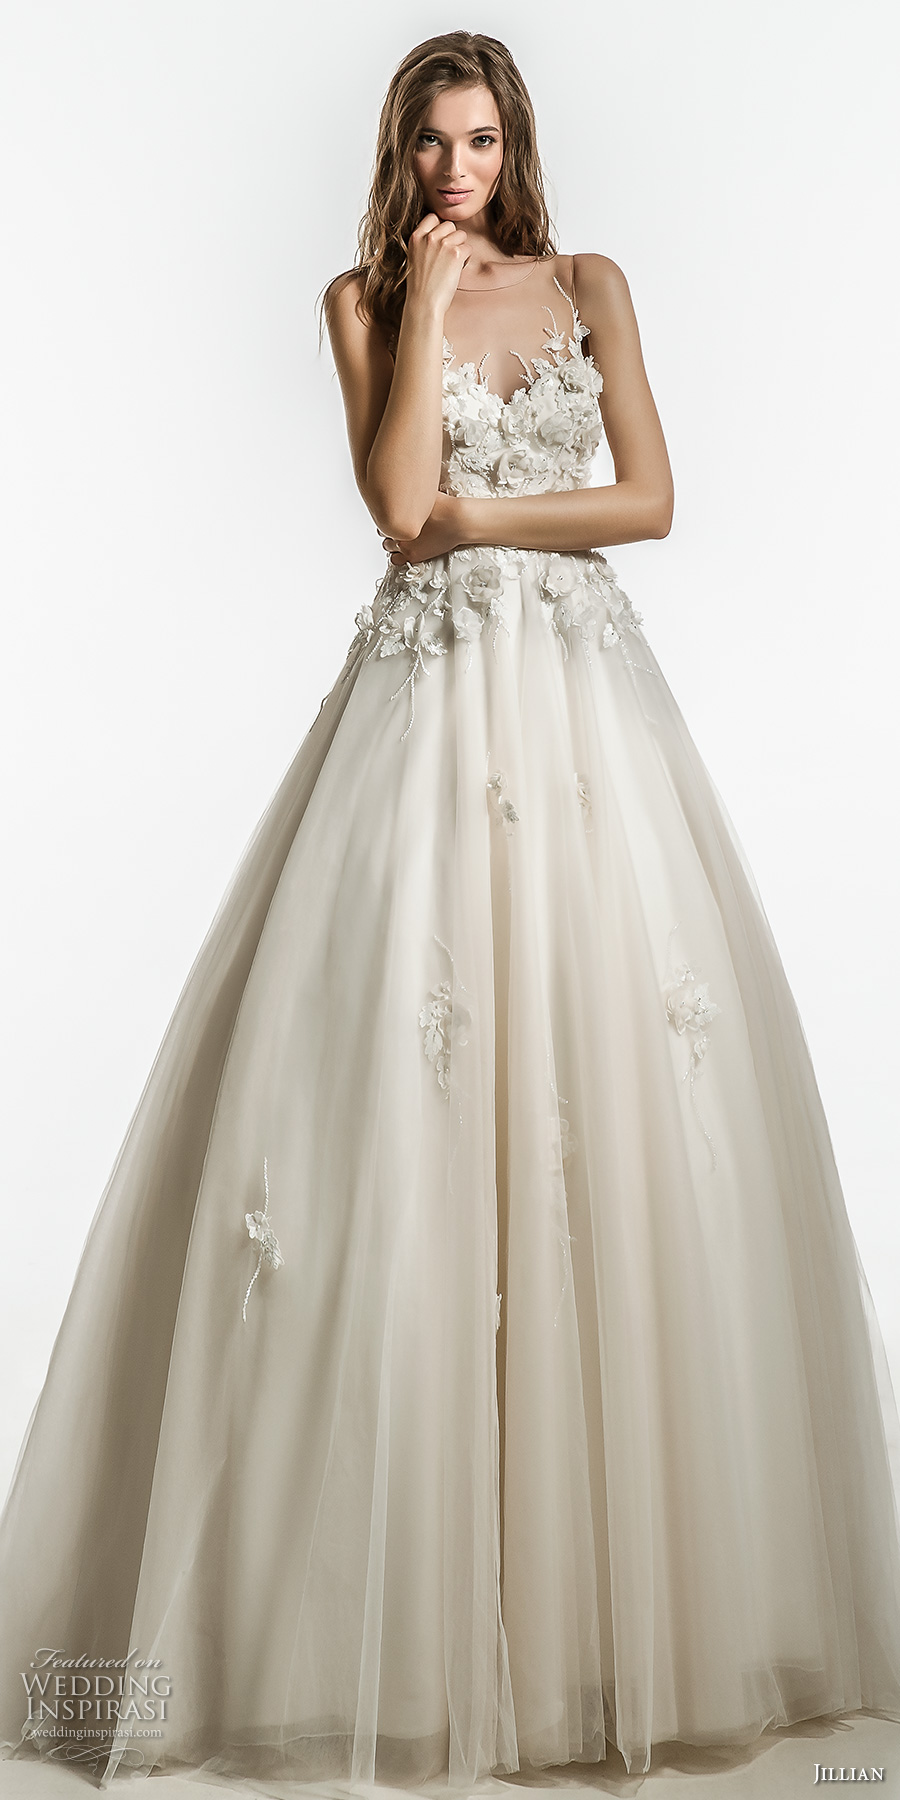 jillian 2018 bridal sleeveless illusion jewel sweetheart neckline heavily embellished bodice romantic a  line wedding dress sheer button back chapel train (11) mv